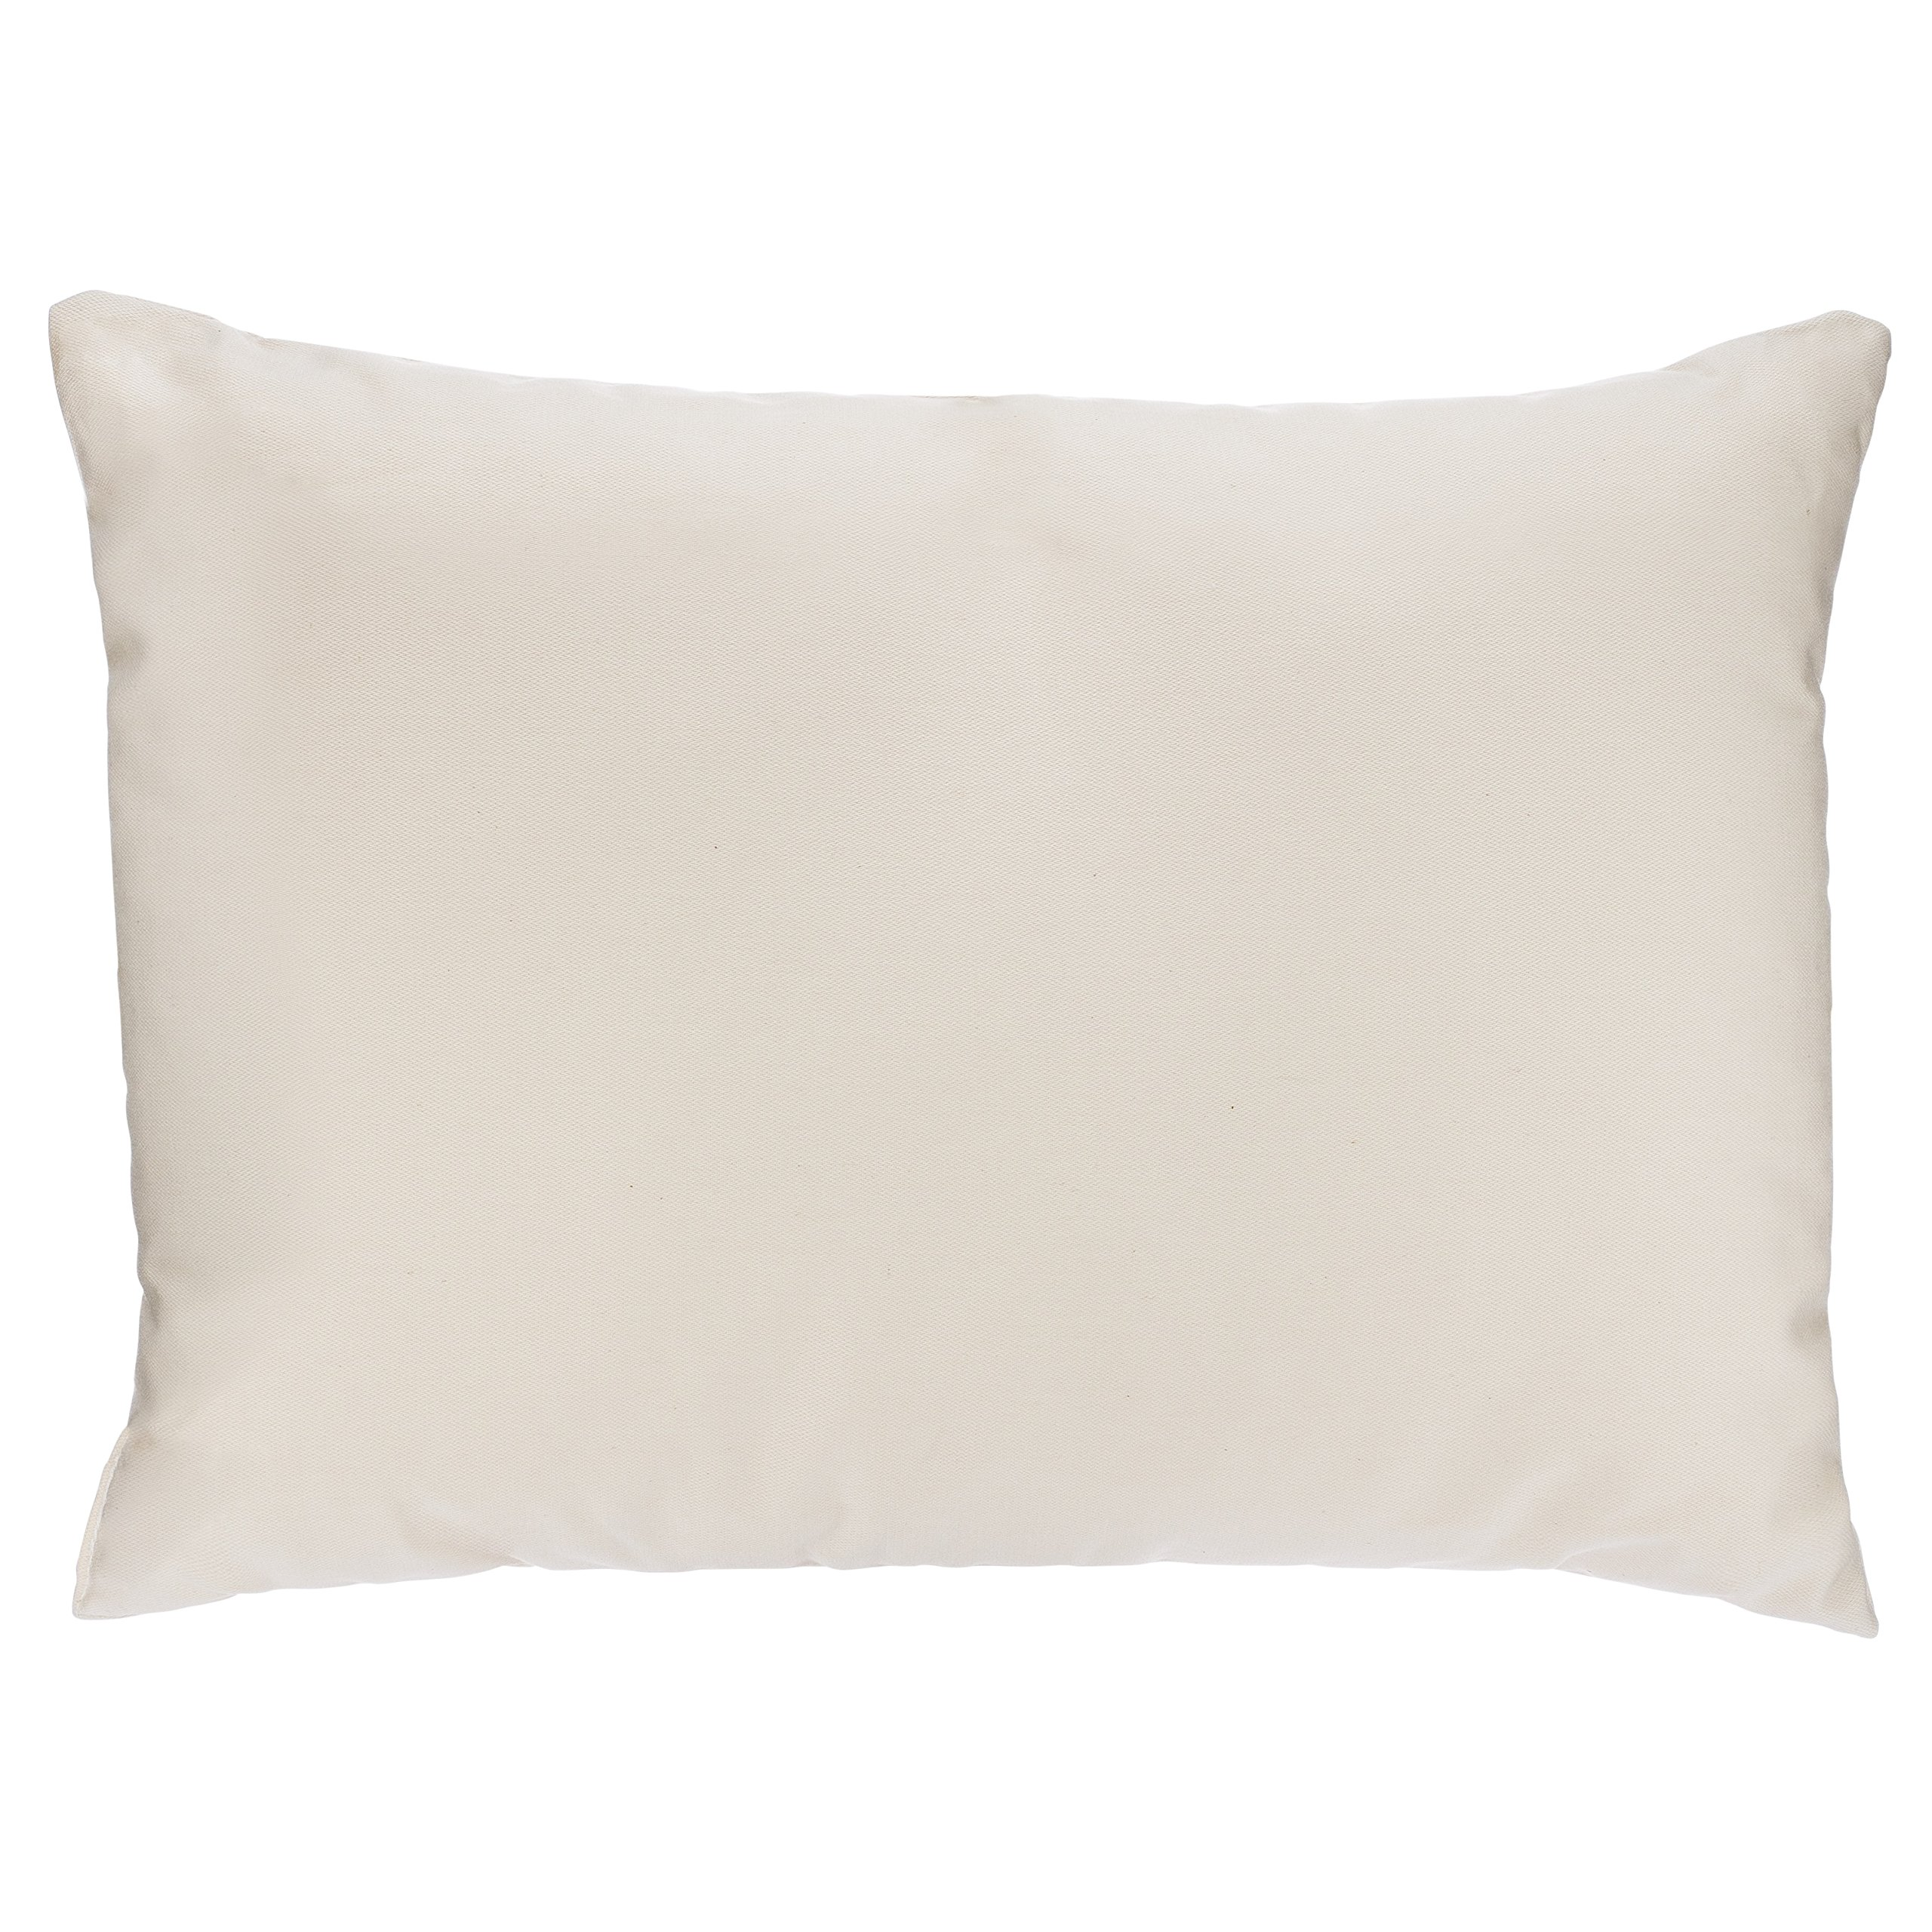 Adovely Toddler Pillow, Organic Cotton, Down Like Fill, Ivory, 13 X 18